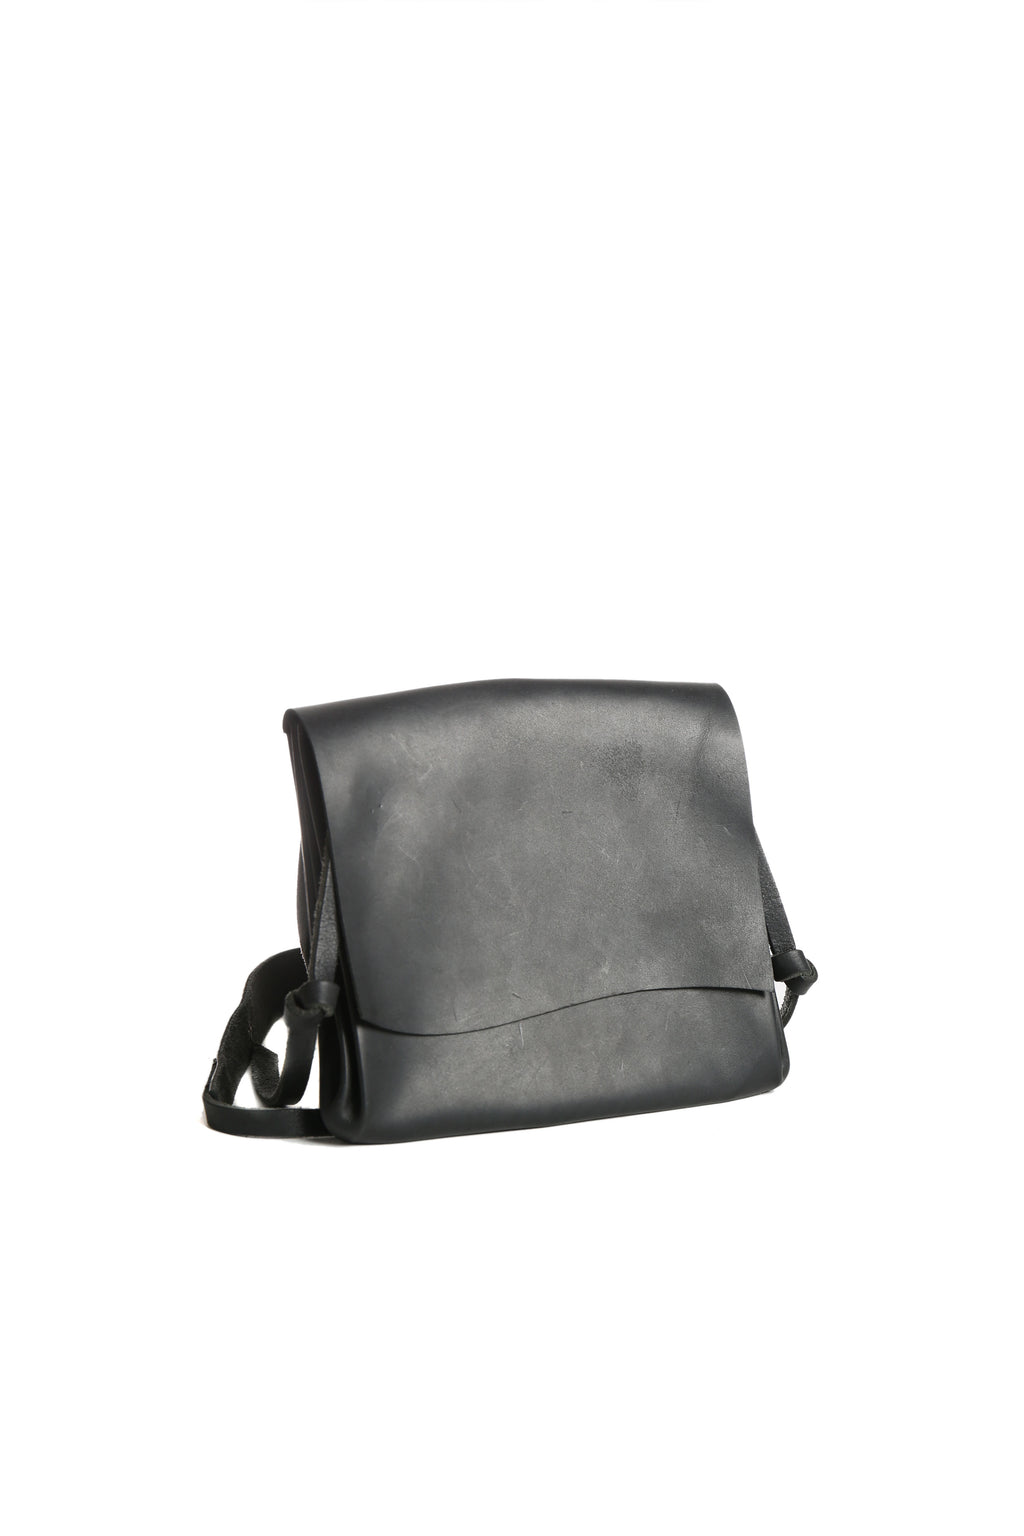 MA+ COW LEATHER EXPANDALE ACCORDION BAG